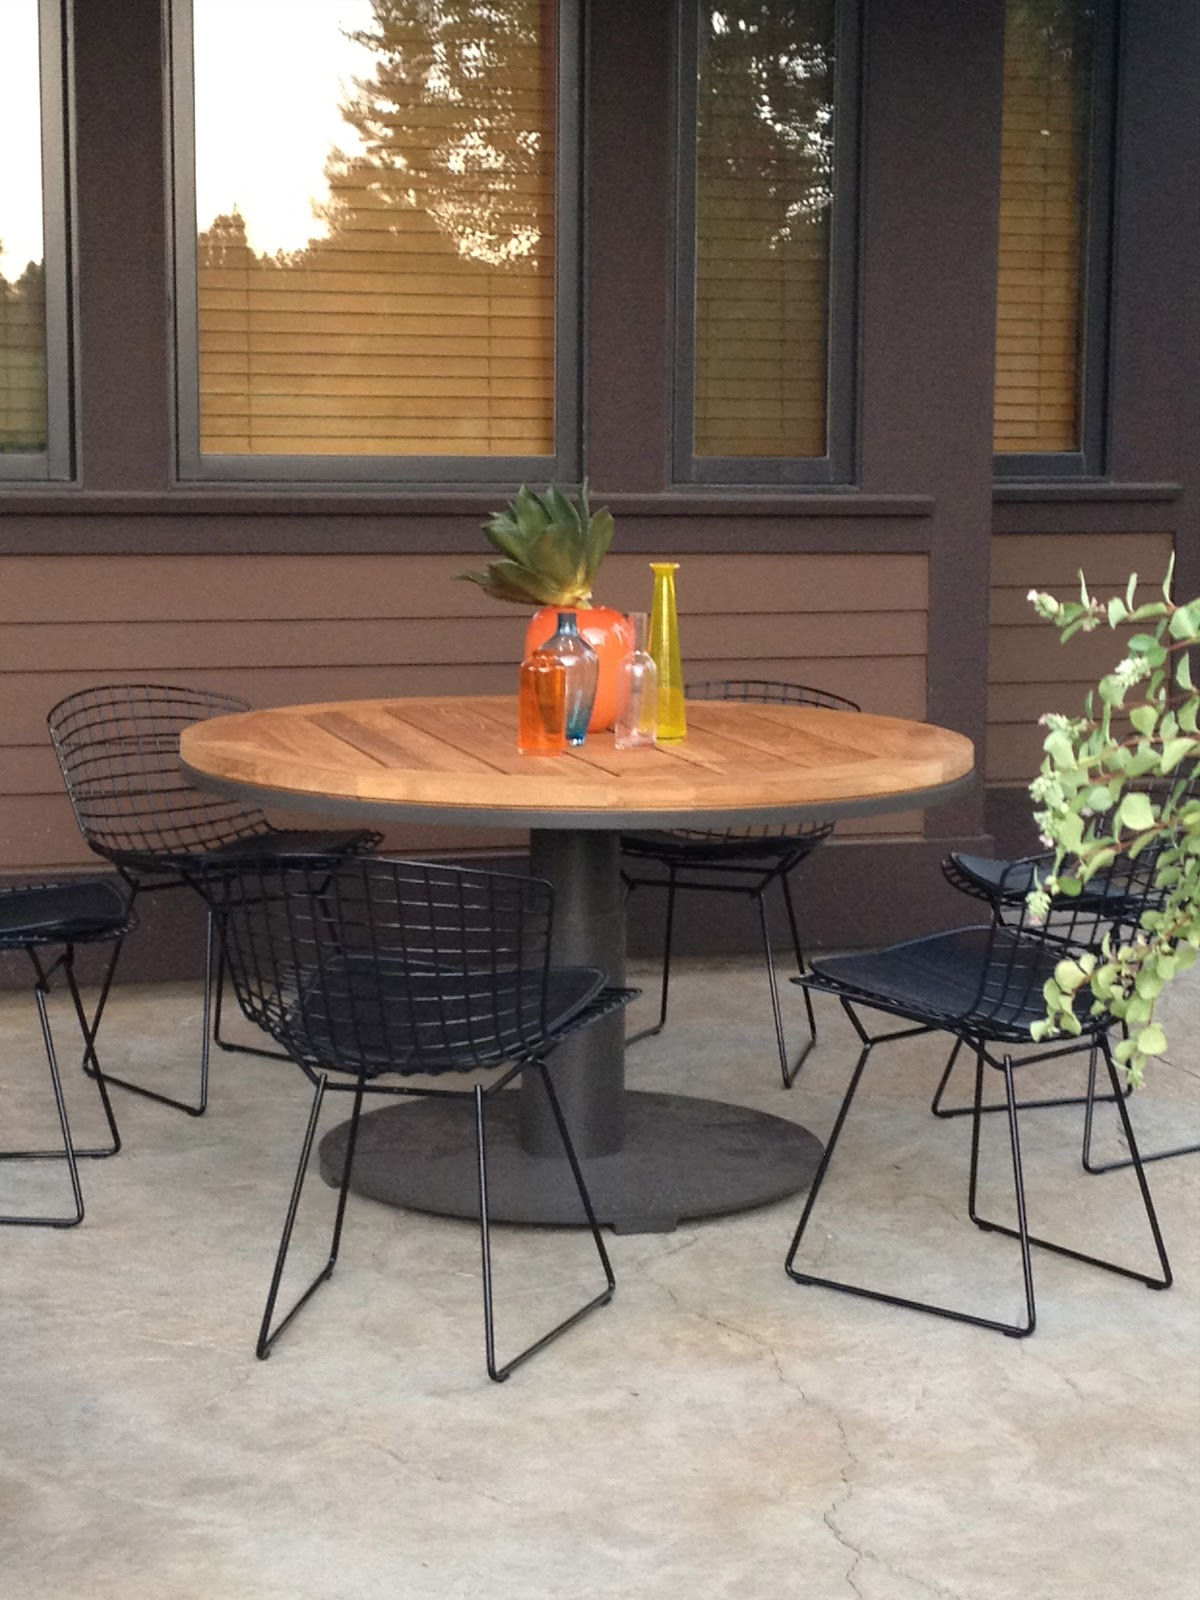 In the dining area we used a wonderful teak and steel table from the